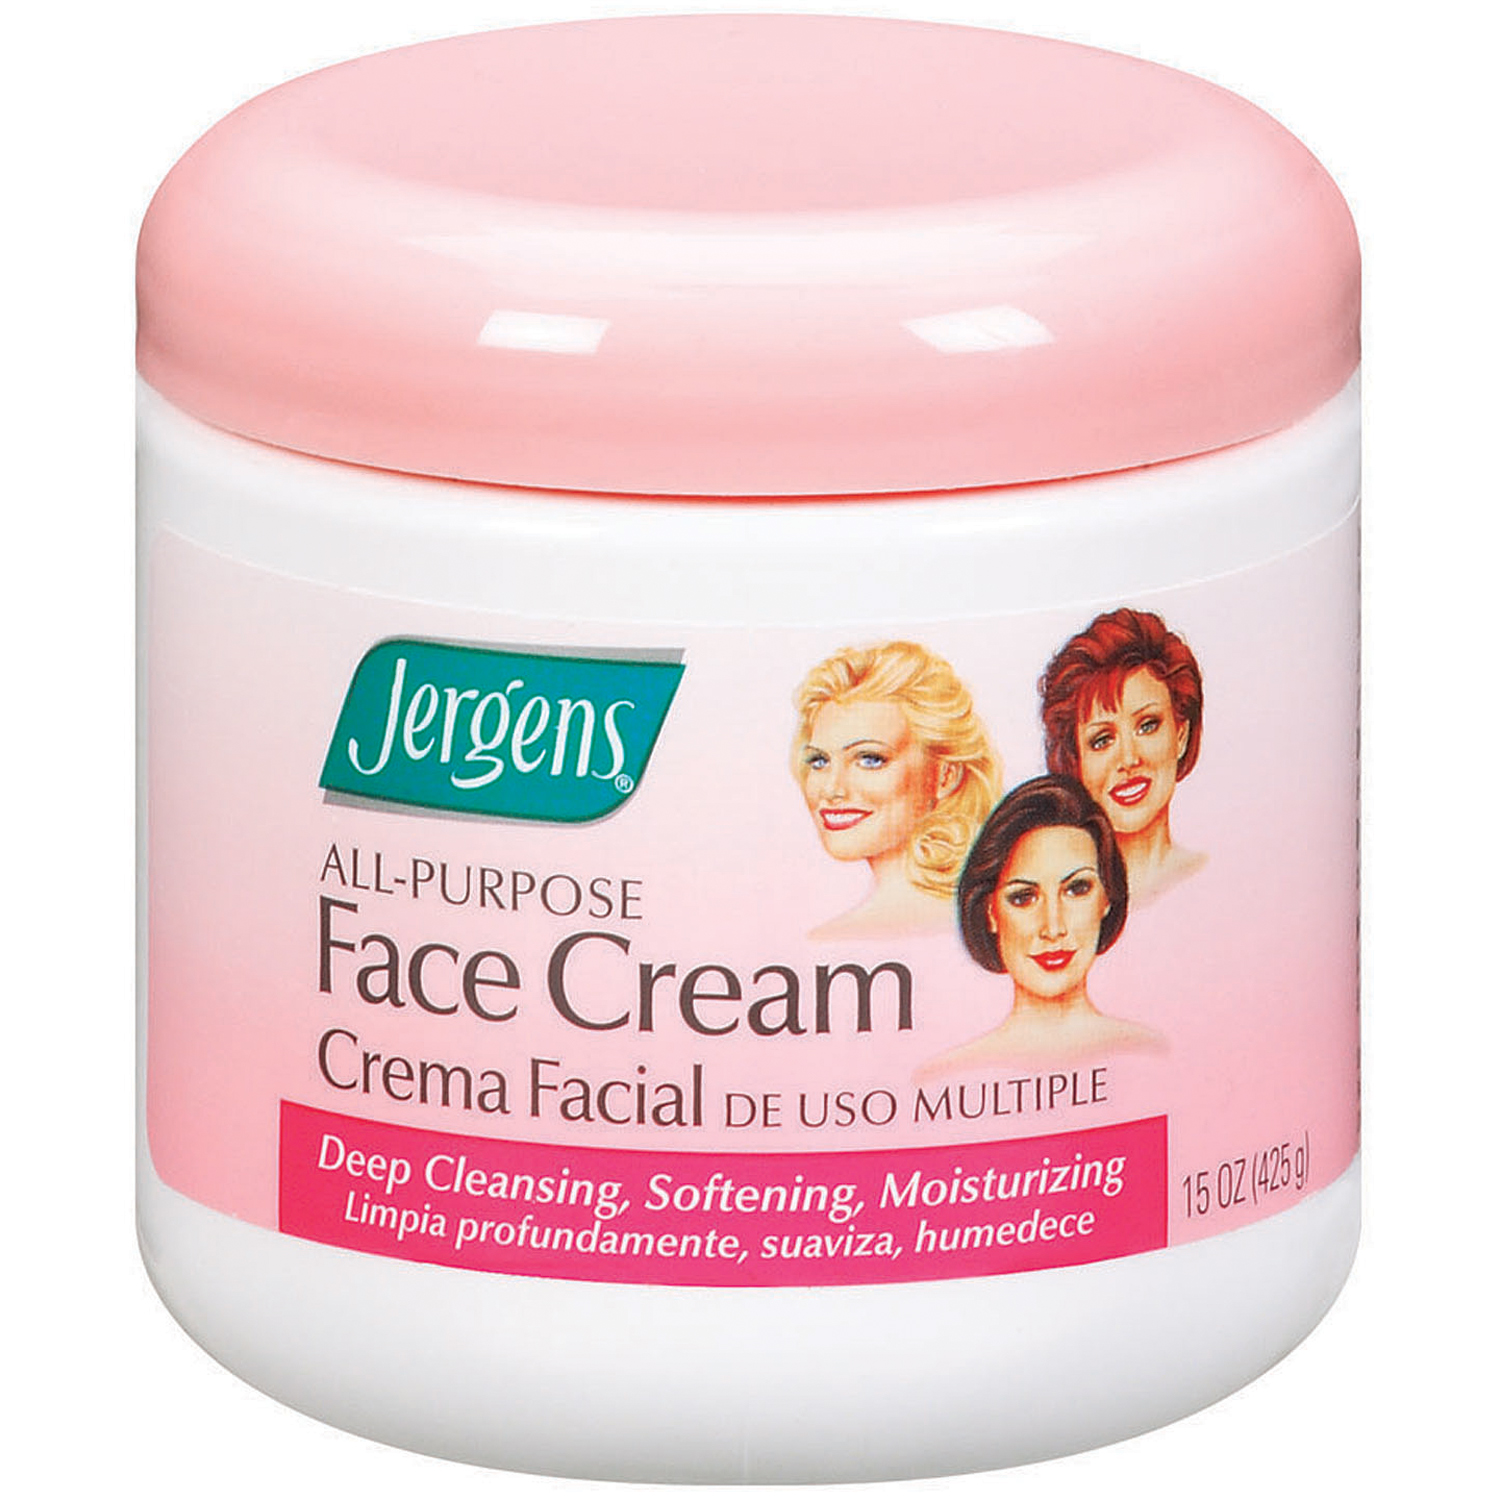 Lotion Or Cream Face